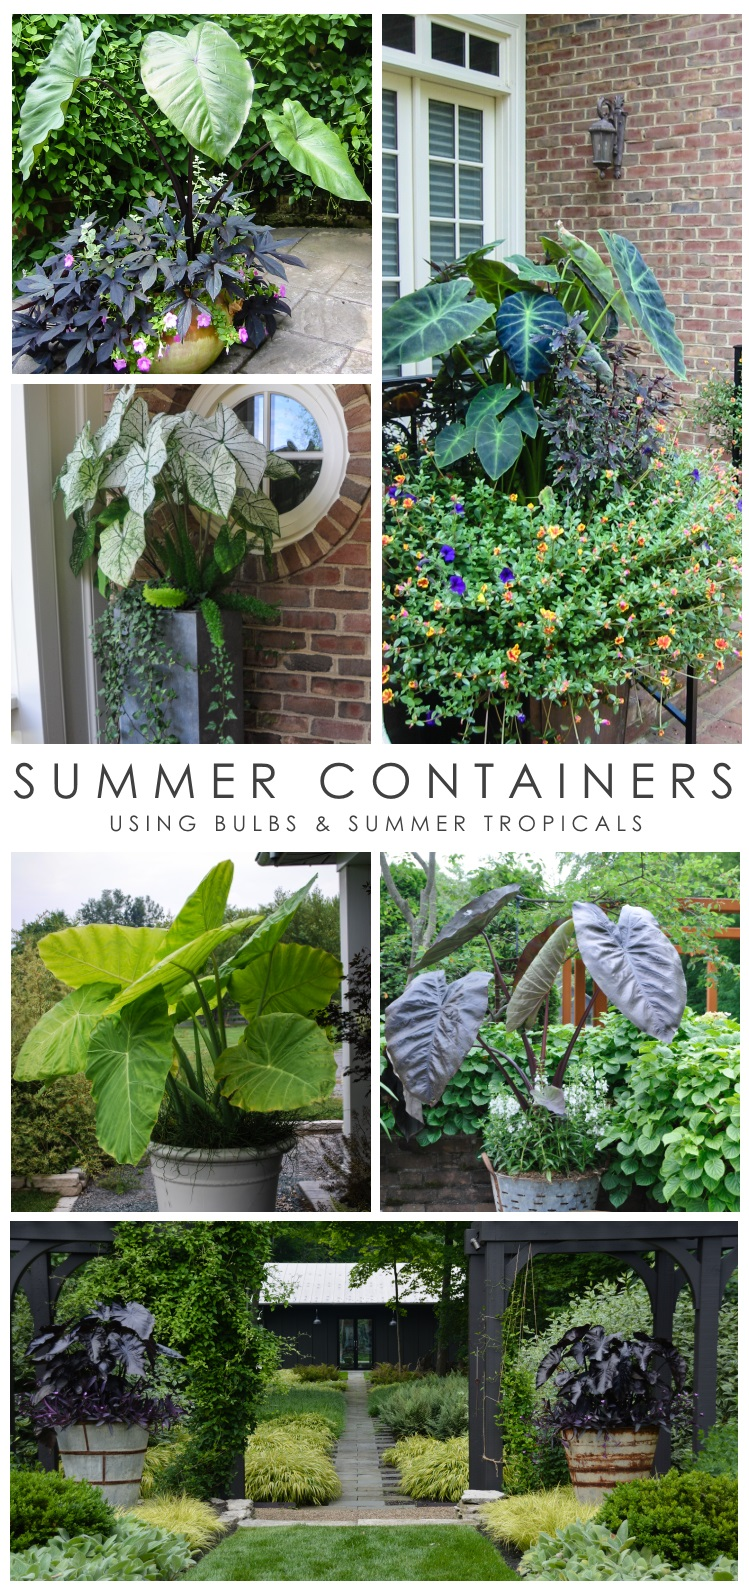 How to use Elephant Ears and Caladiums in containers for impactful summer containers. From from Thinking Outside the Boxwood